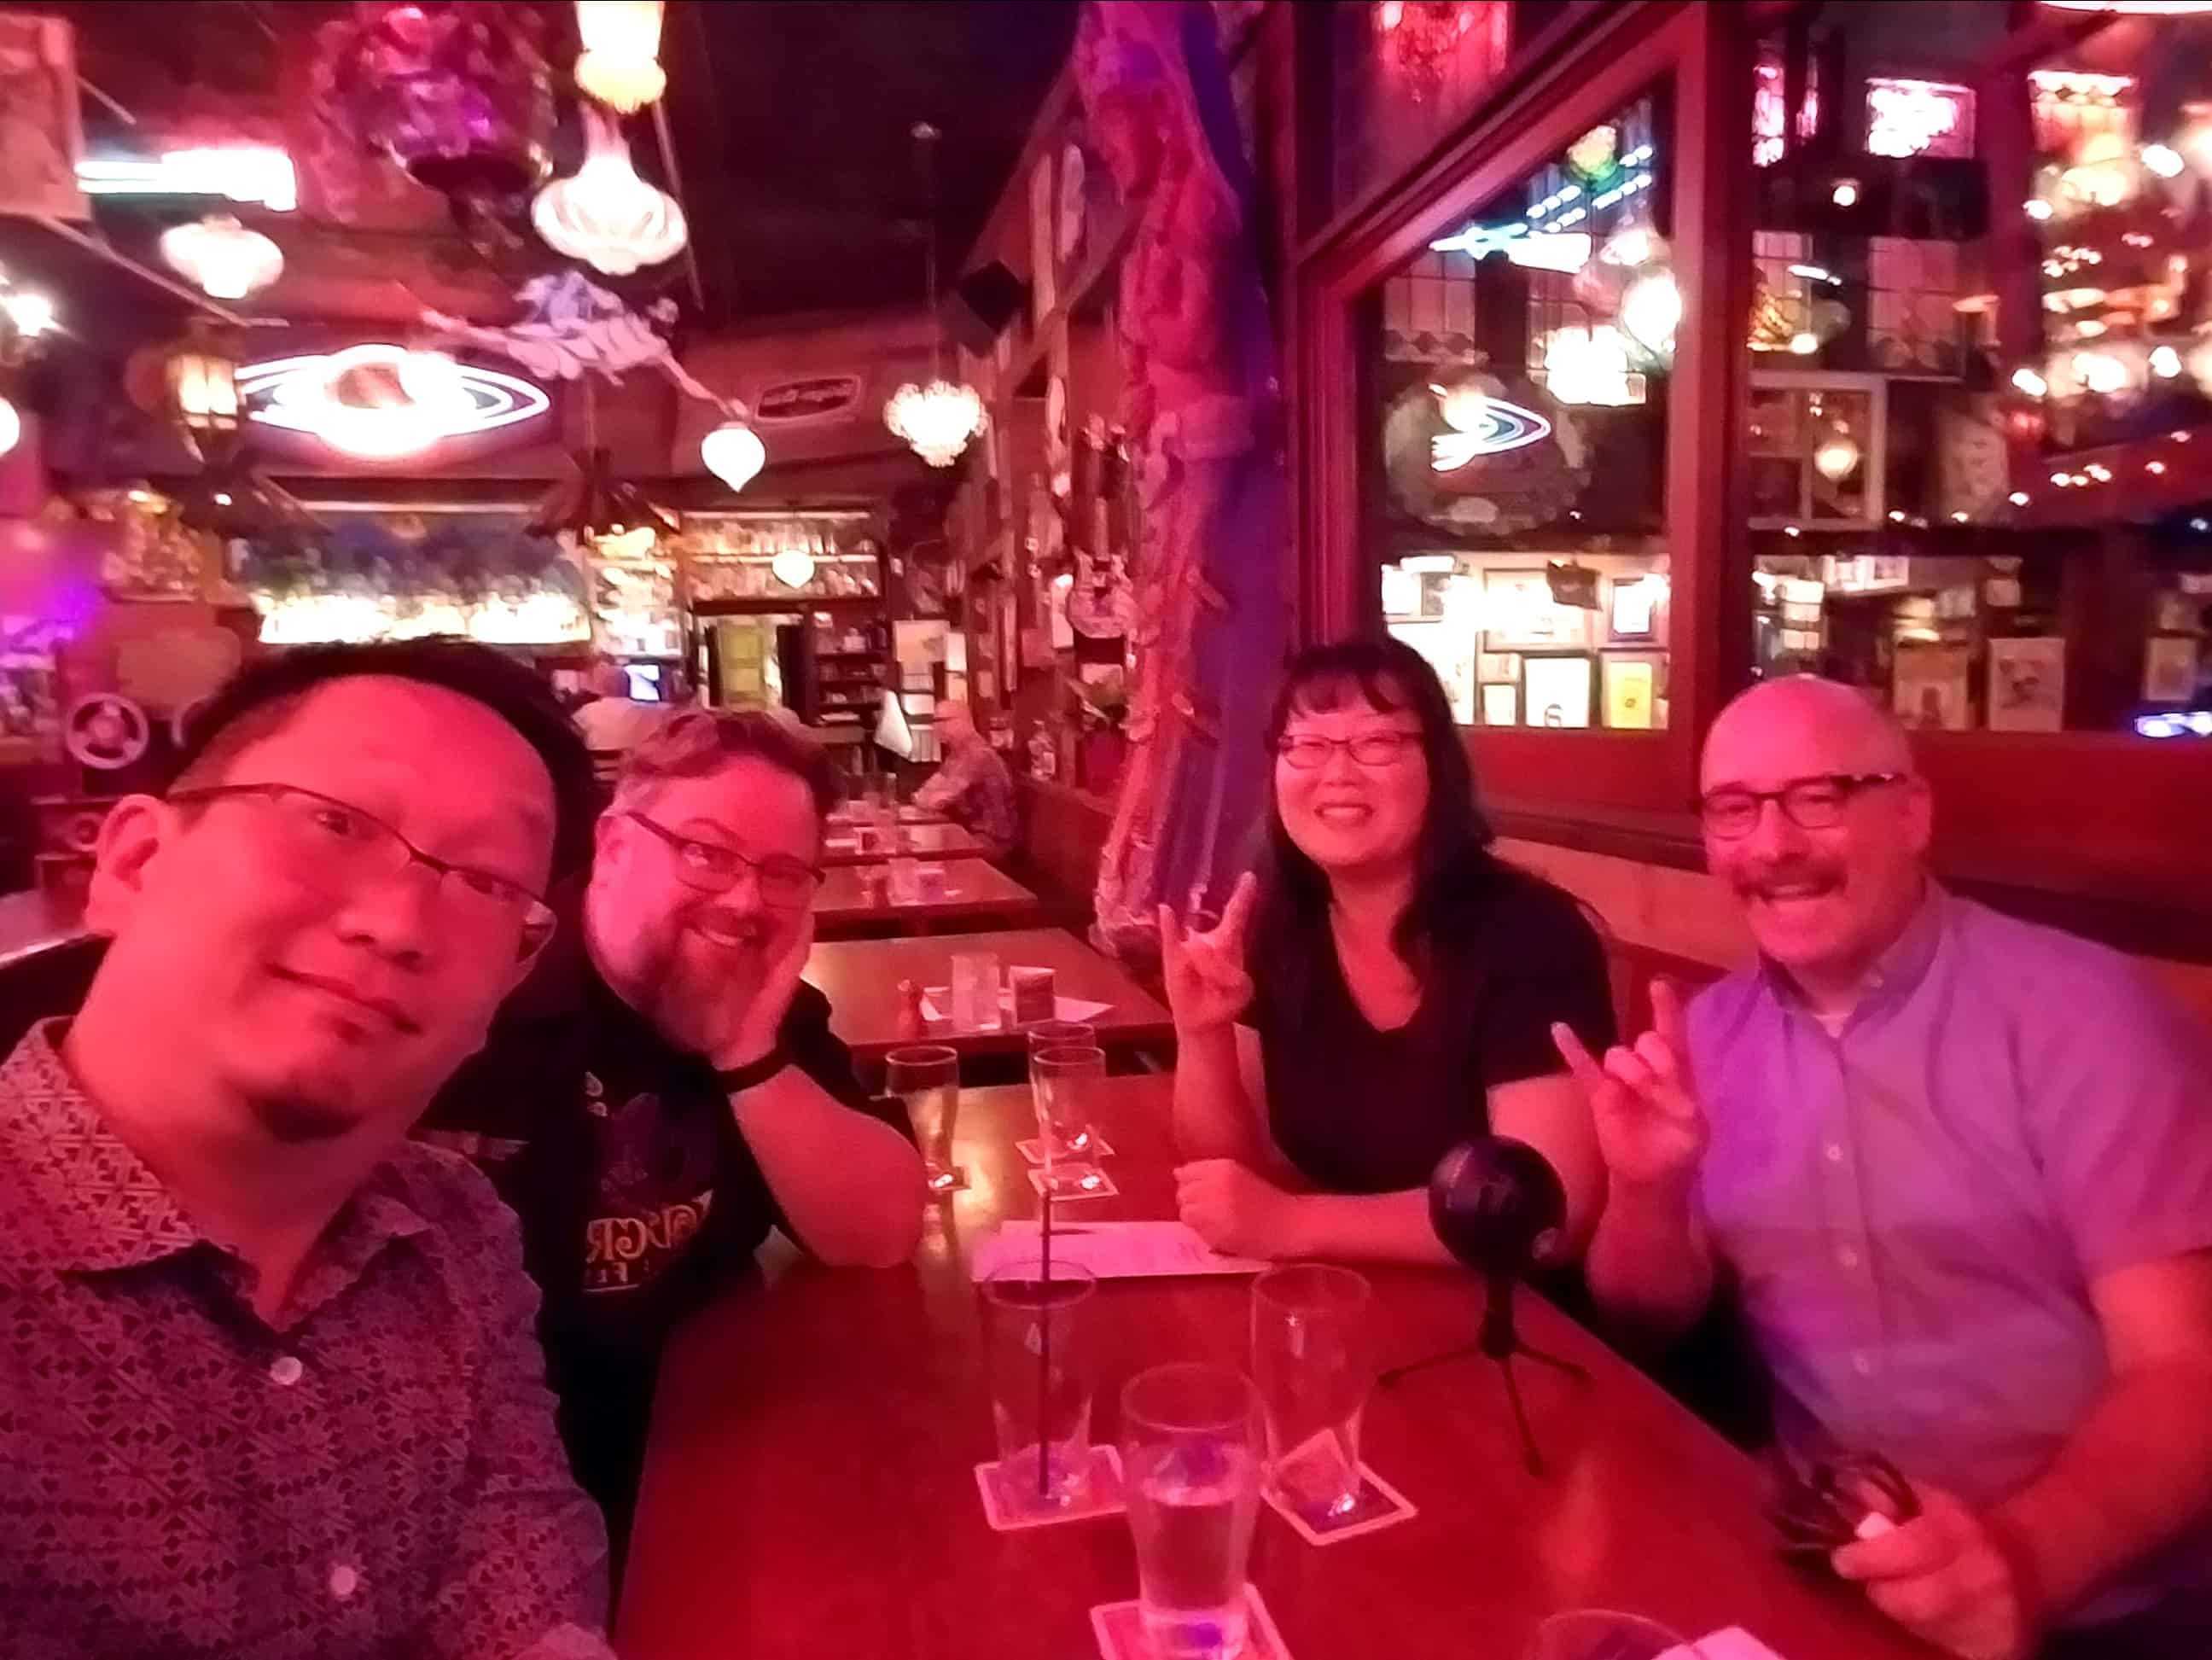 An almost in-focus selfie with Eric, Brian, Gwen, and Mike who gathered at the Barley Mill Tavern to talk about frightening films and the festival in PDX that celebrates them.